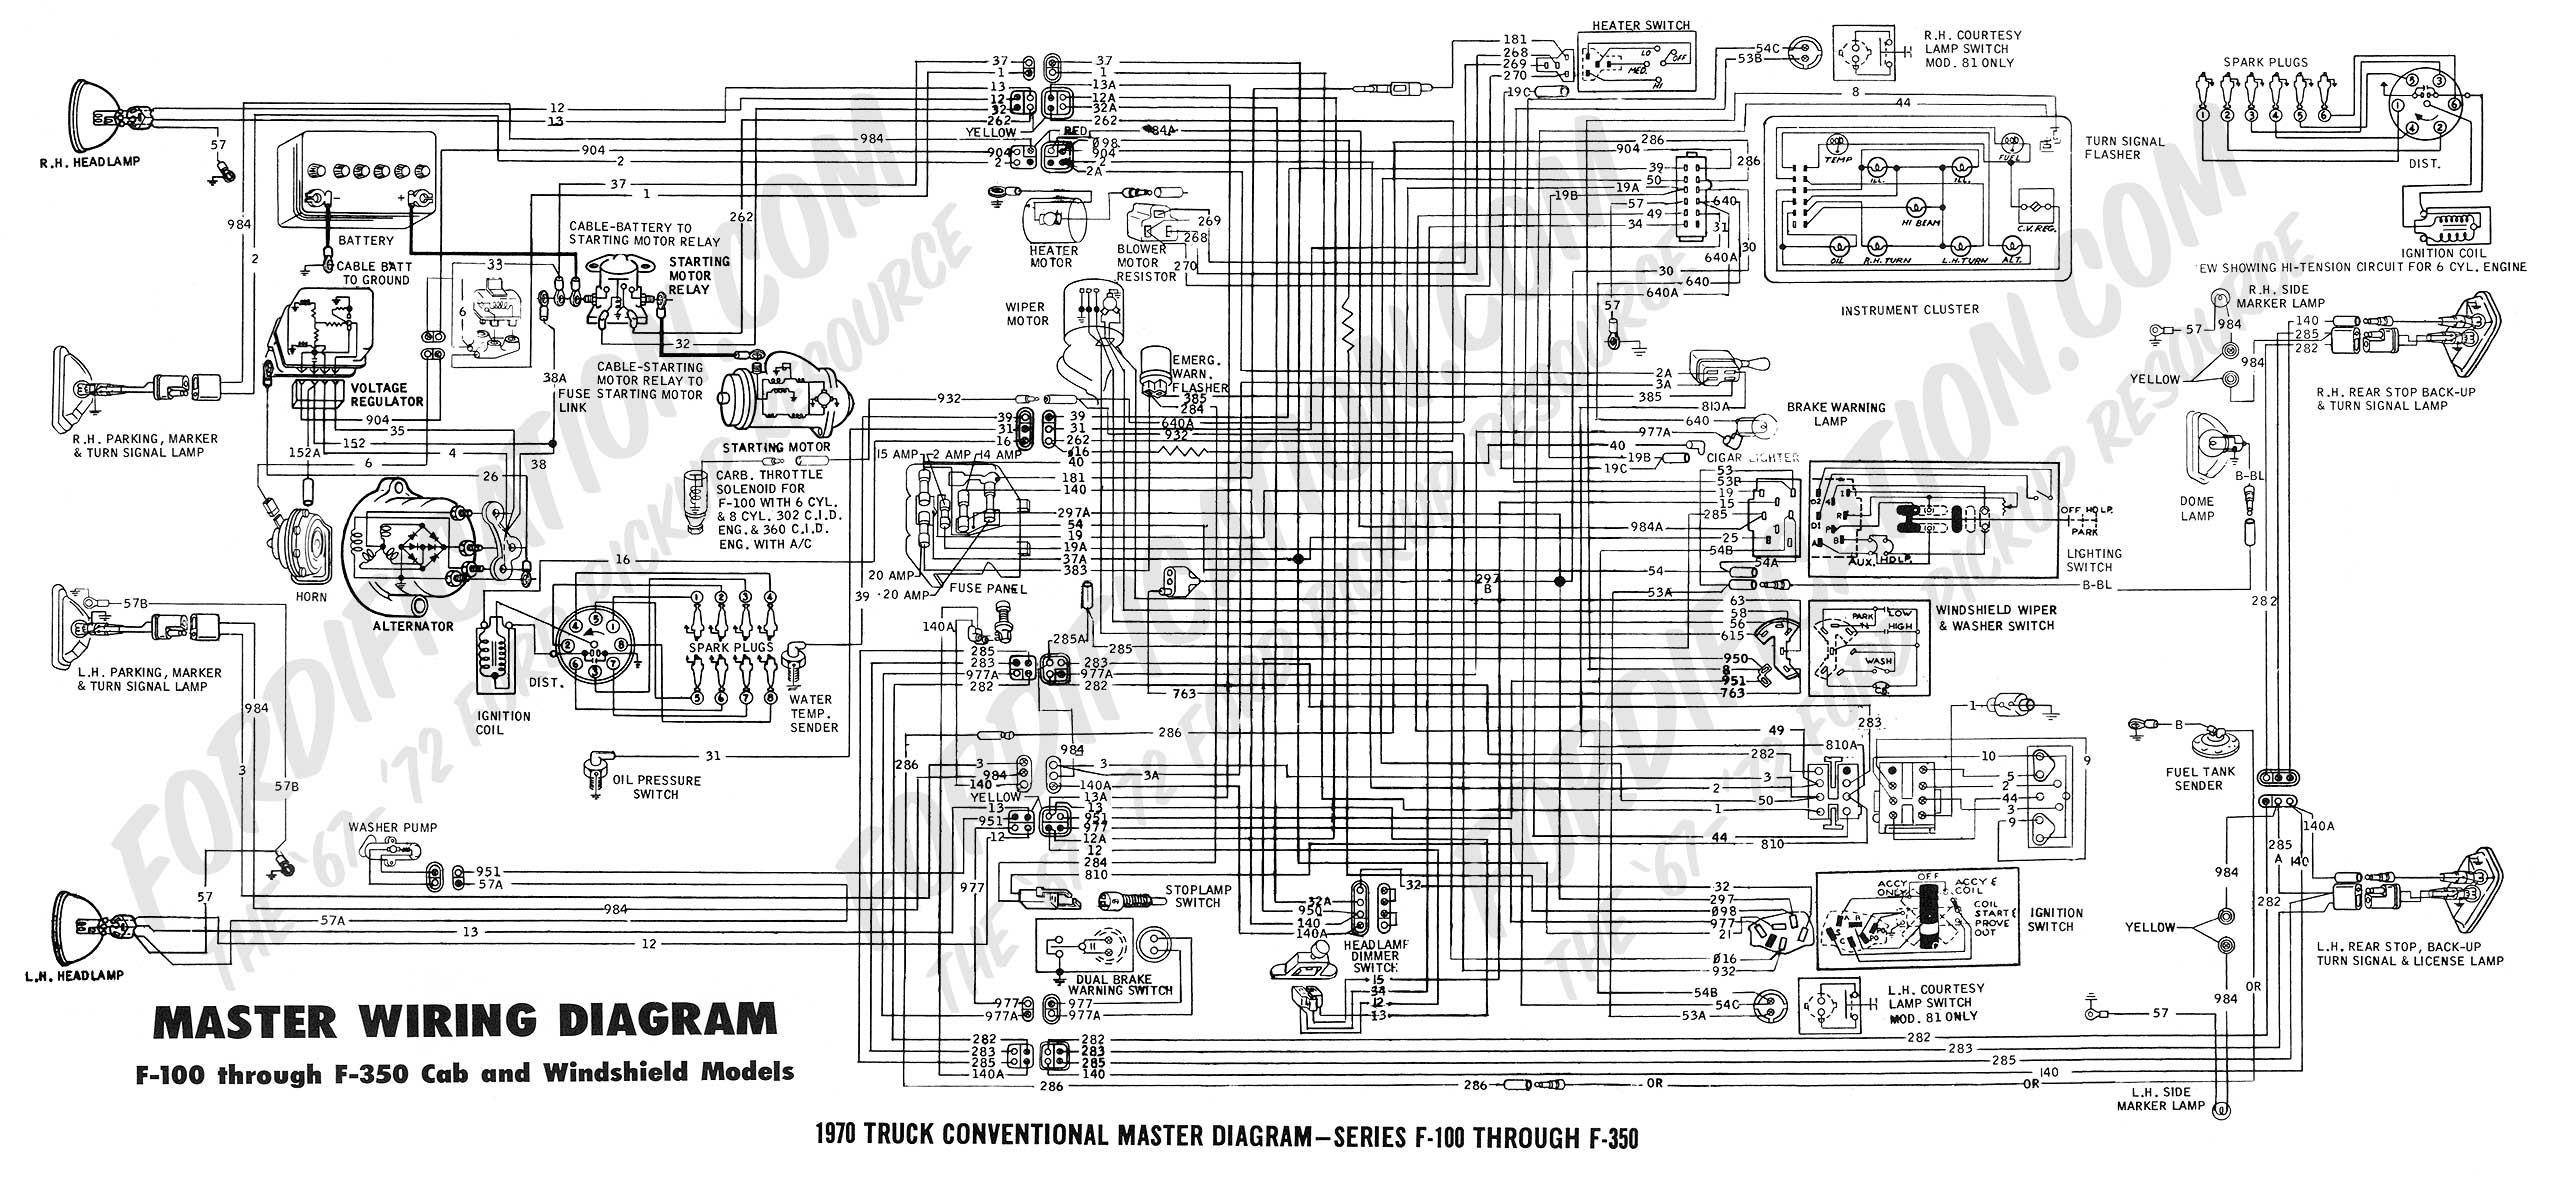 1986 ford f700 wiring diagram diy enthusiasts wiring diagrams u2022 rh  broadwaycomputers us 2007 Ford E350 Fuse Diagram 1998 Ford E350 Fuse Box  Diagram